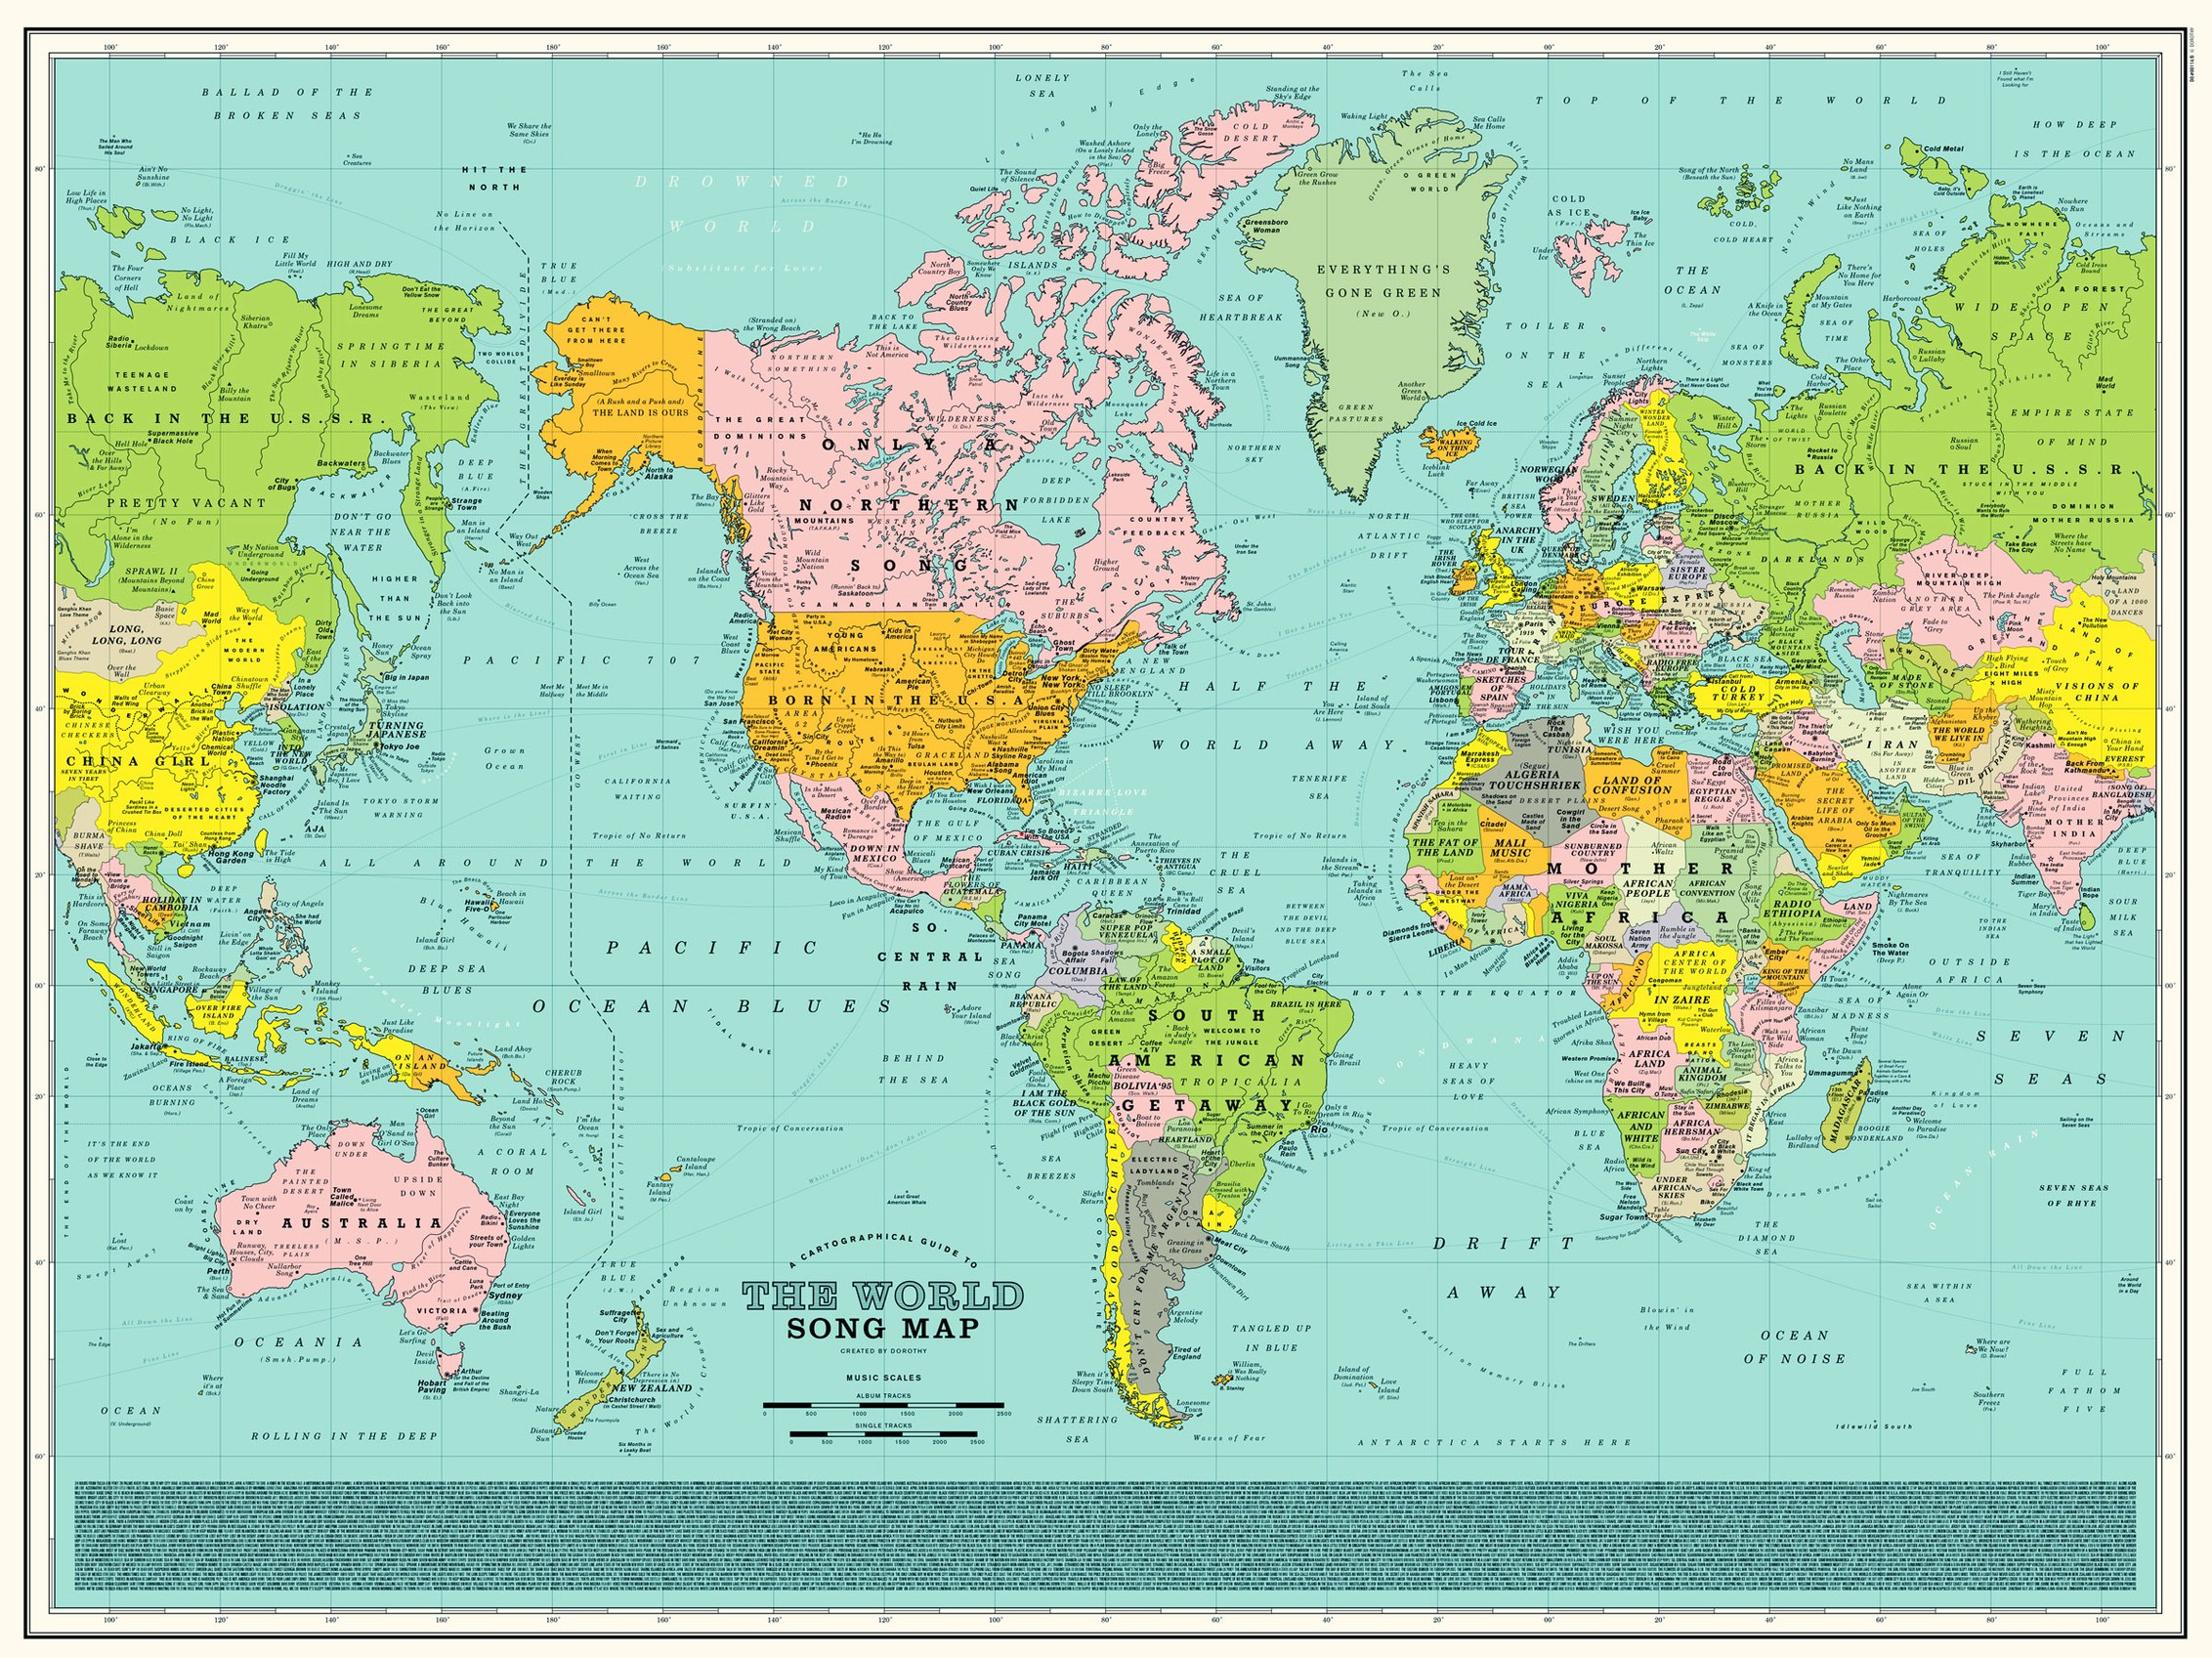 Cartina 1500.Look Closely This World Map Is Made Up Of Classic Song Titles